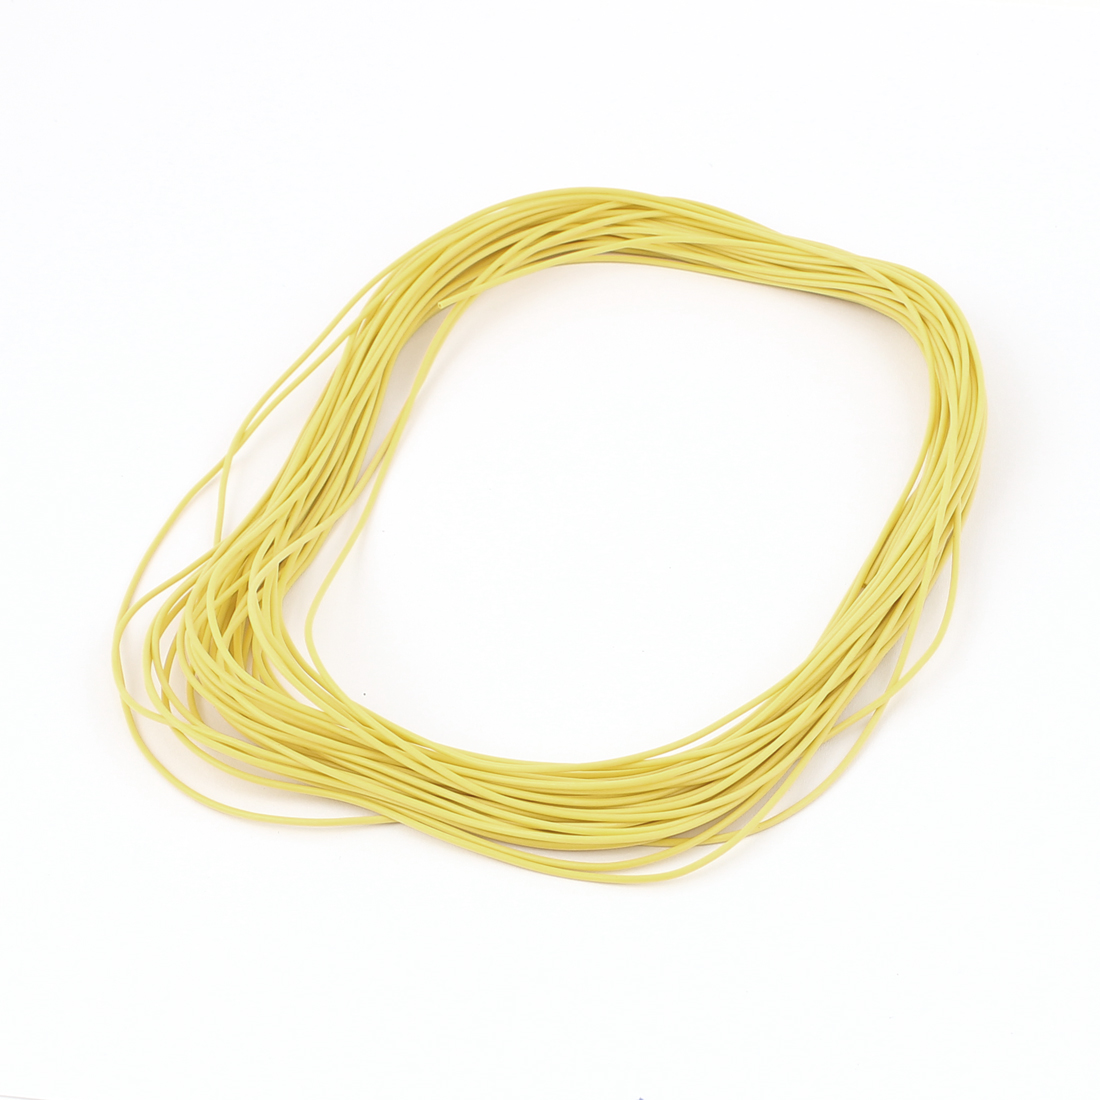 15M 28AWG Electric Copper Core Flexible Silicone Wire Cable Yellow